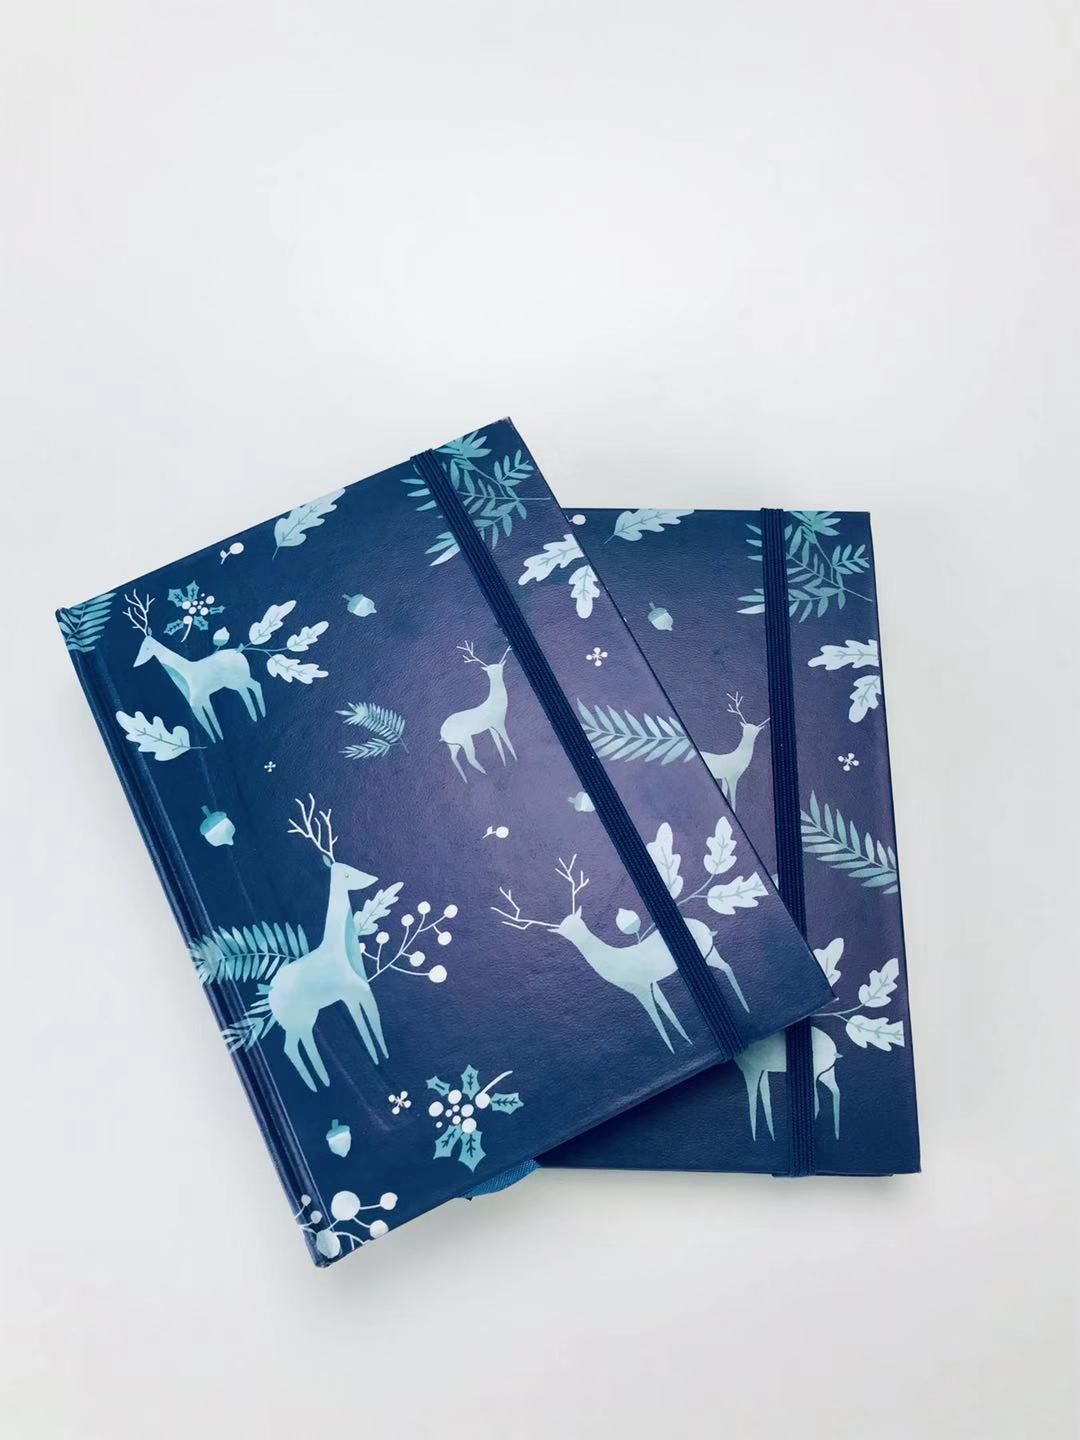 SEASONAL COLLECTION PURE WINTER HARDCOVER NOTEBOOK WITH RULER